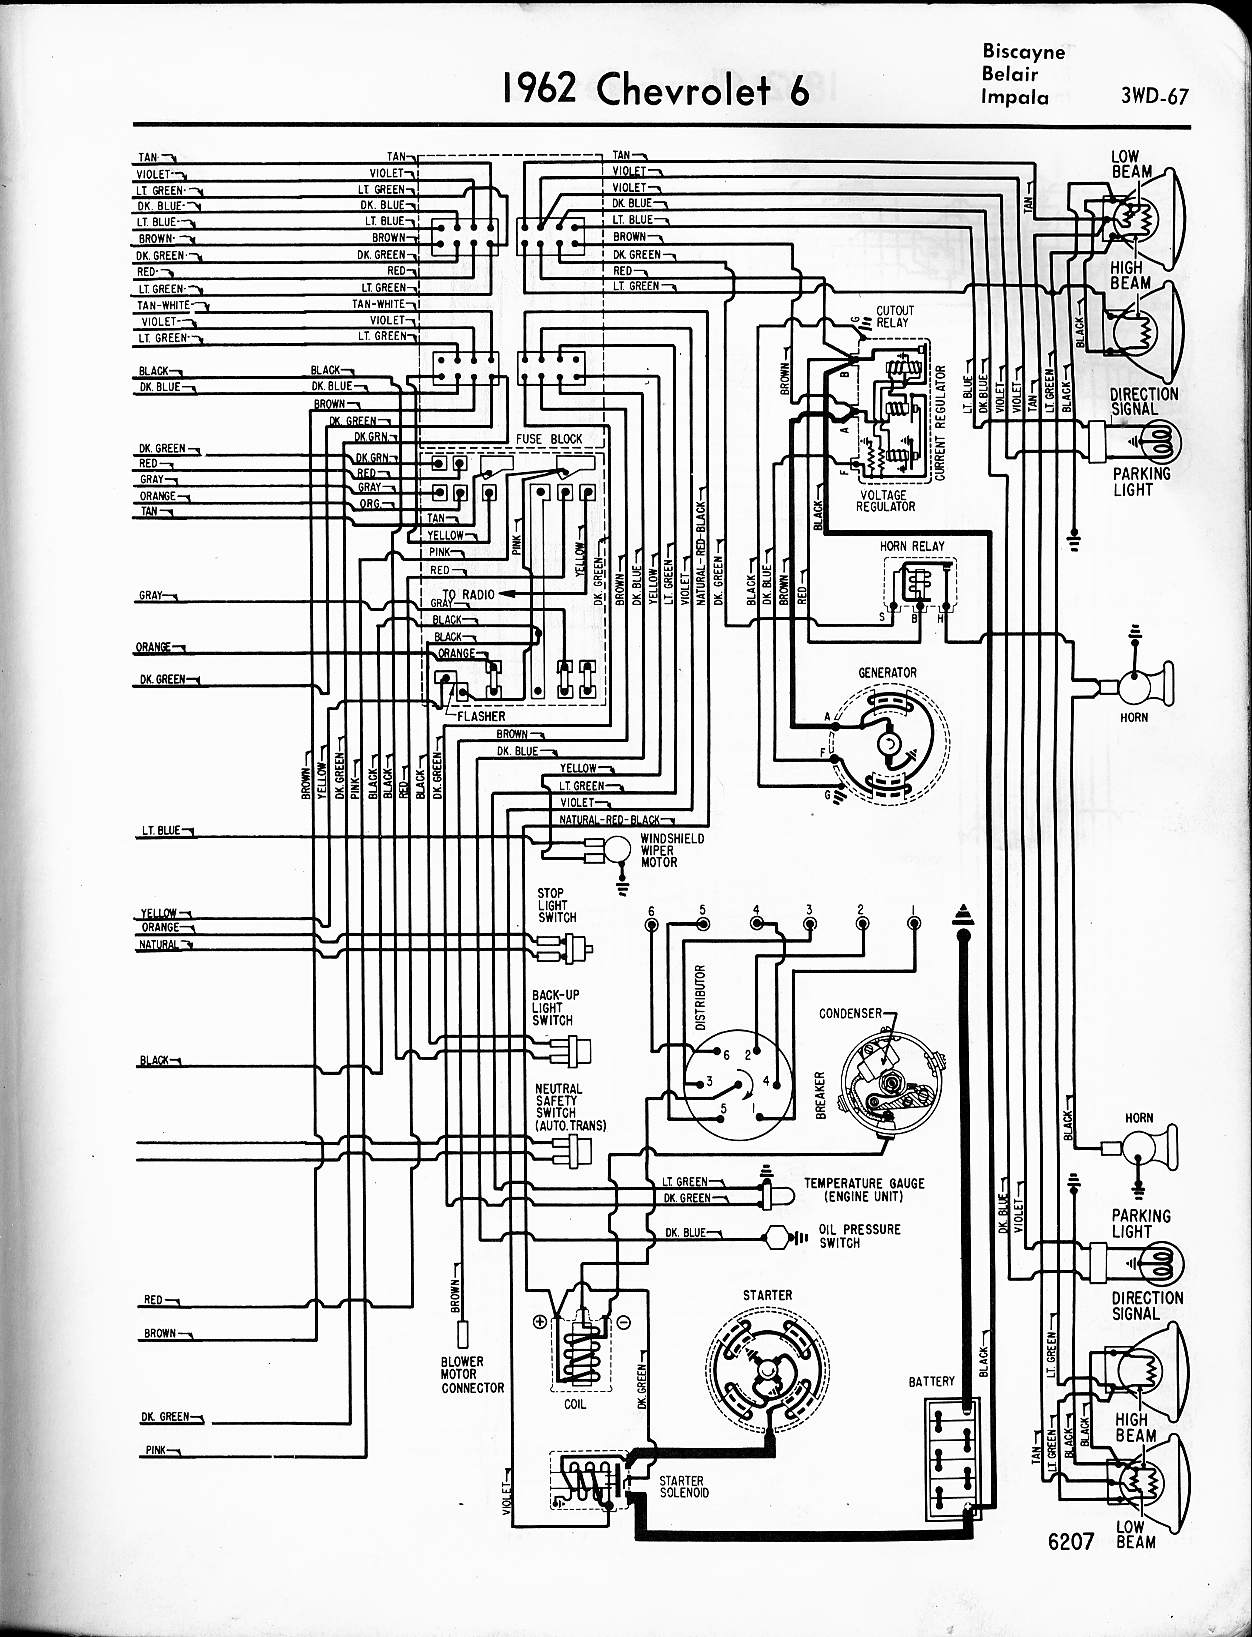 1964 Chevy Coil Wiring Diagrams. 1964 Chevy Truck Wiring